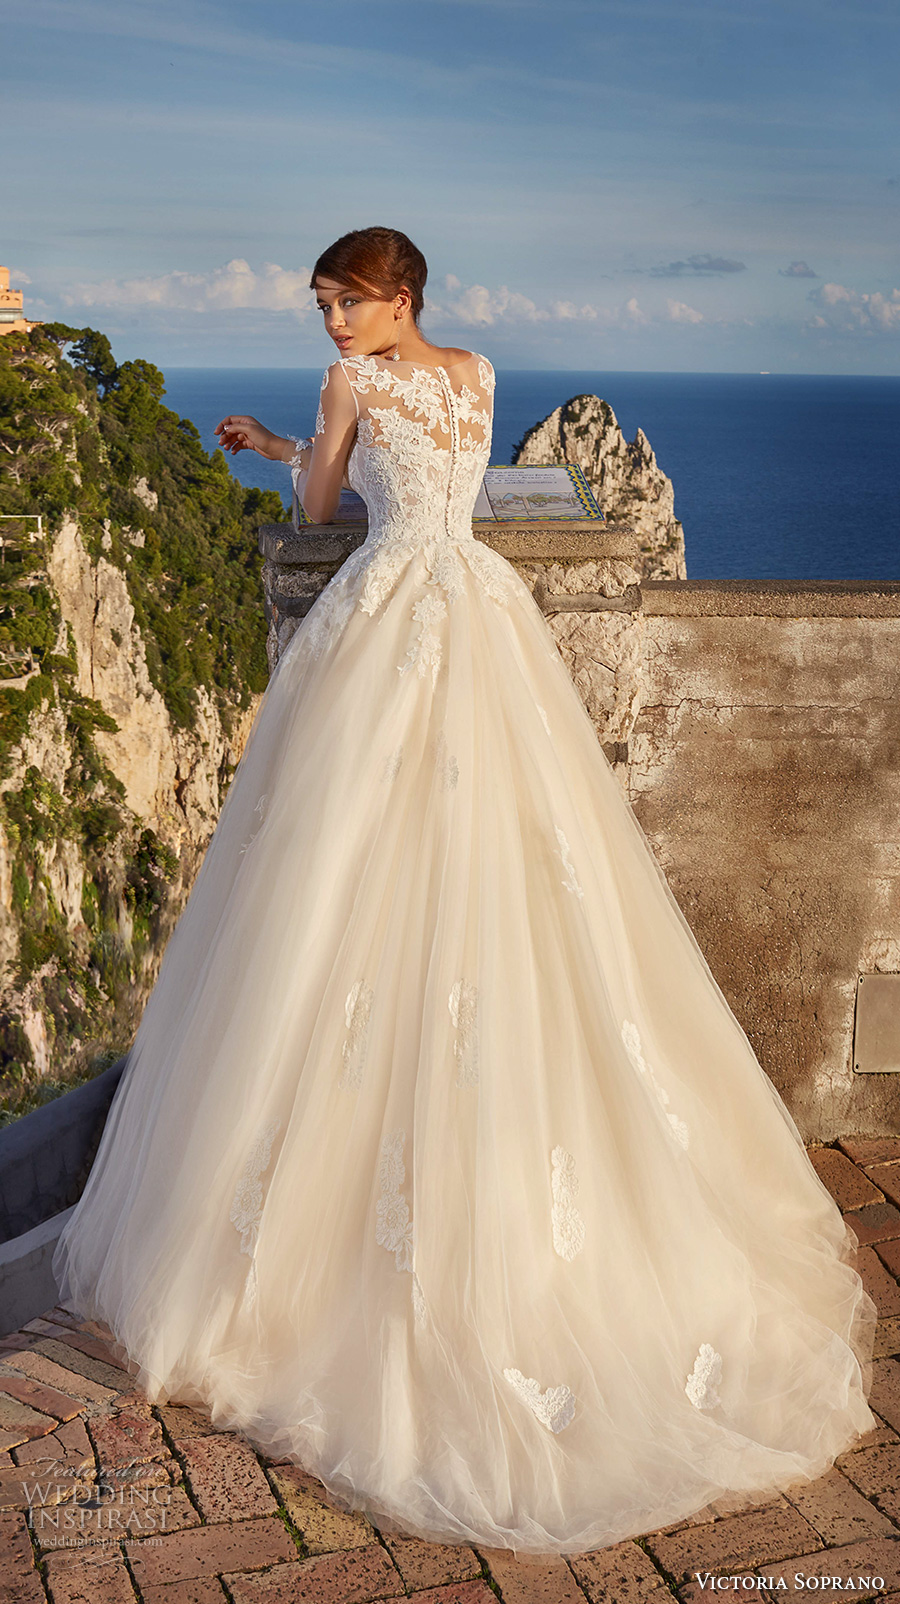 victoria soprano 2017 bridal cap sleeves illusion bateau sweetheart neckline bustier heavily embellished bodice romantic blush a  line ball gown wedding dress sheer lace back chapel train (10) bv